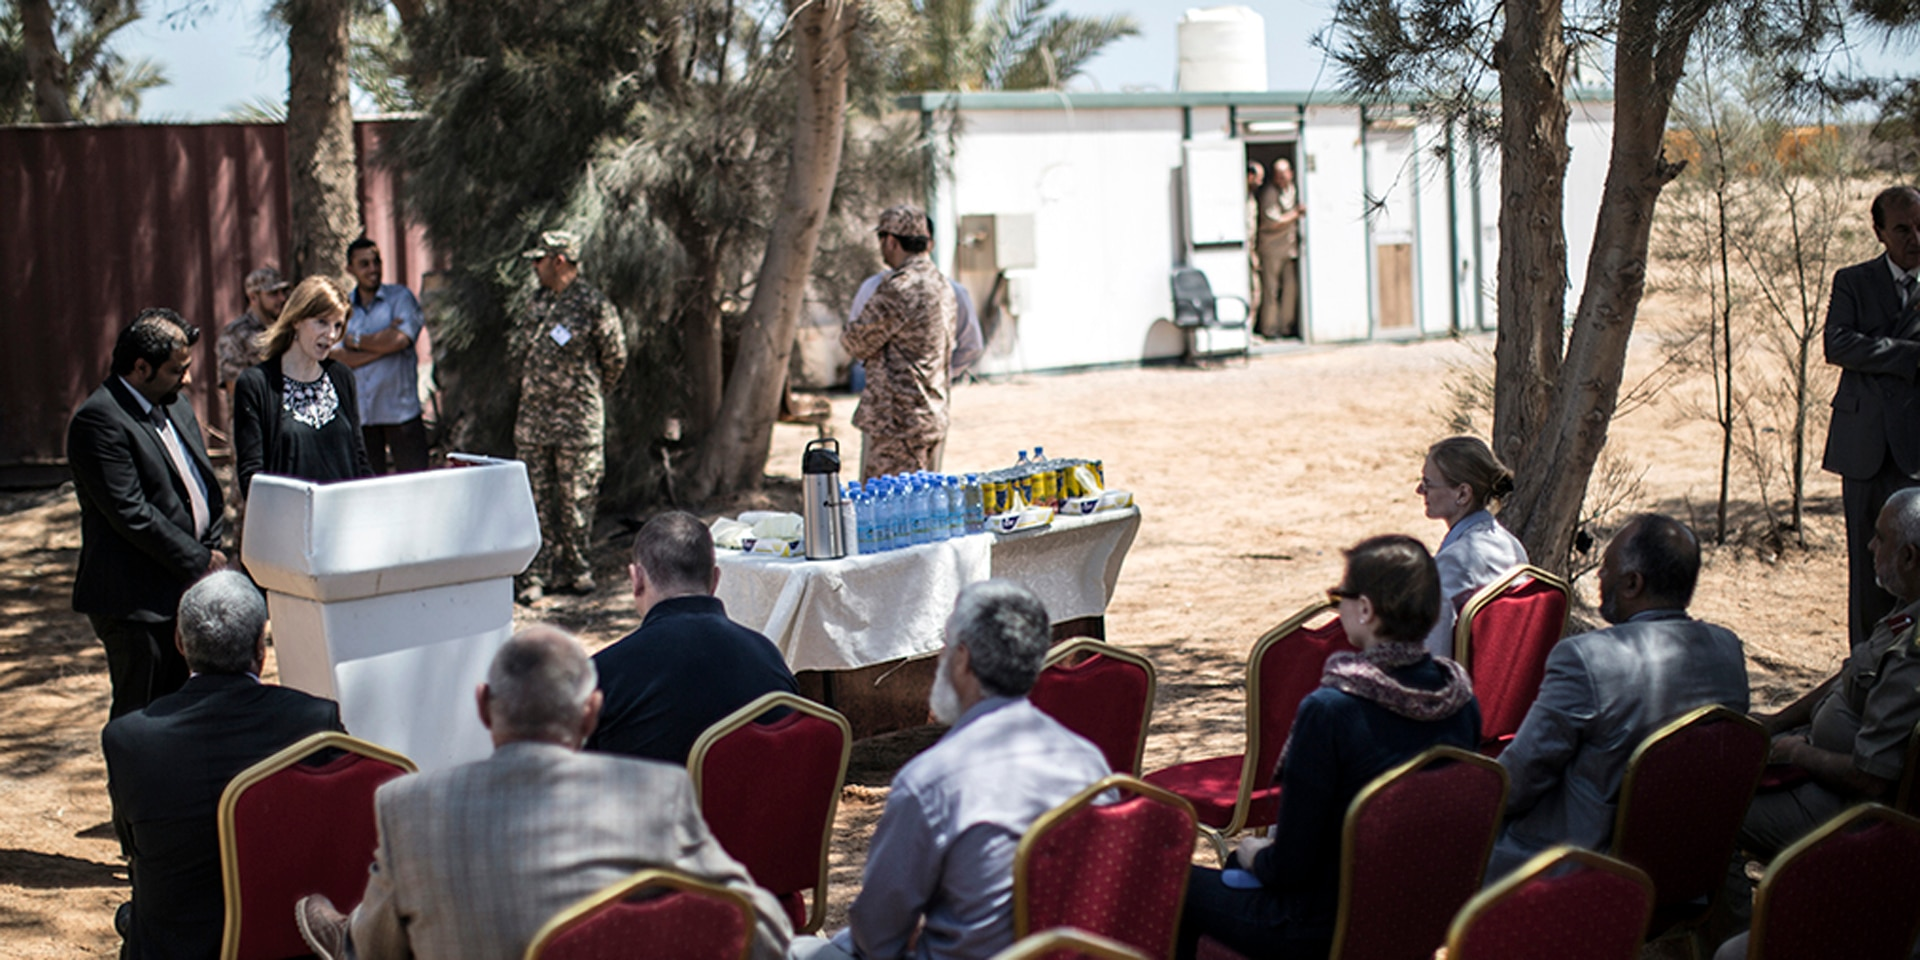 Claudia Marti speaks from a lectern during a conference in Libya.